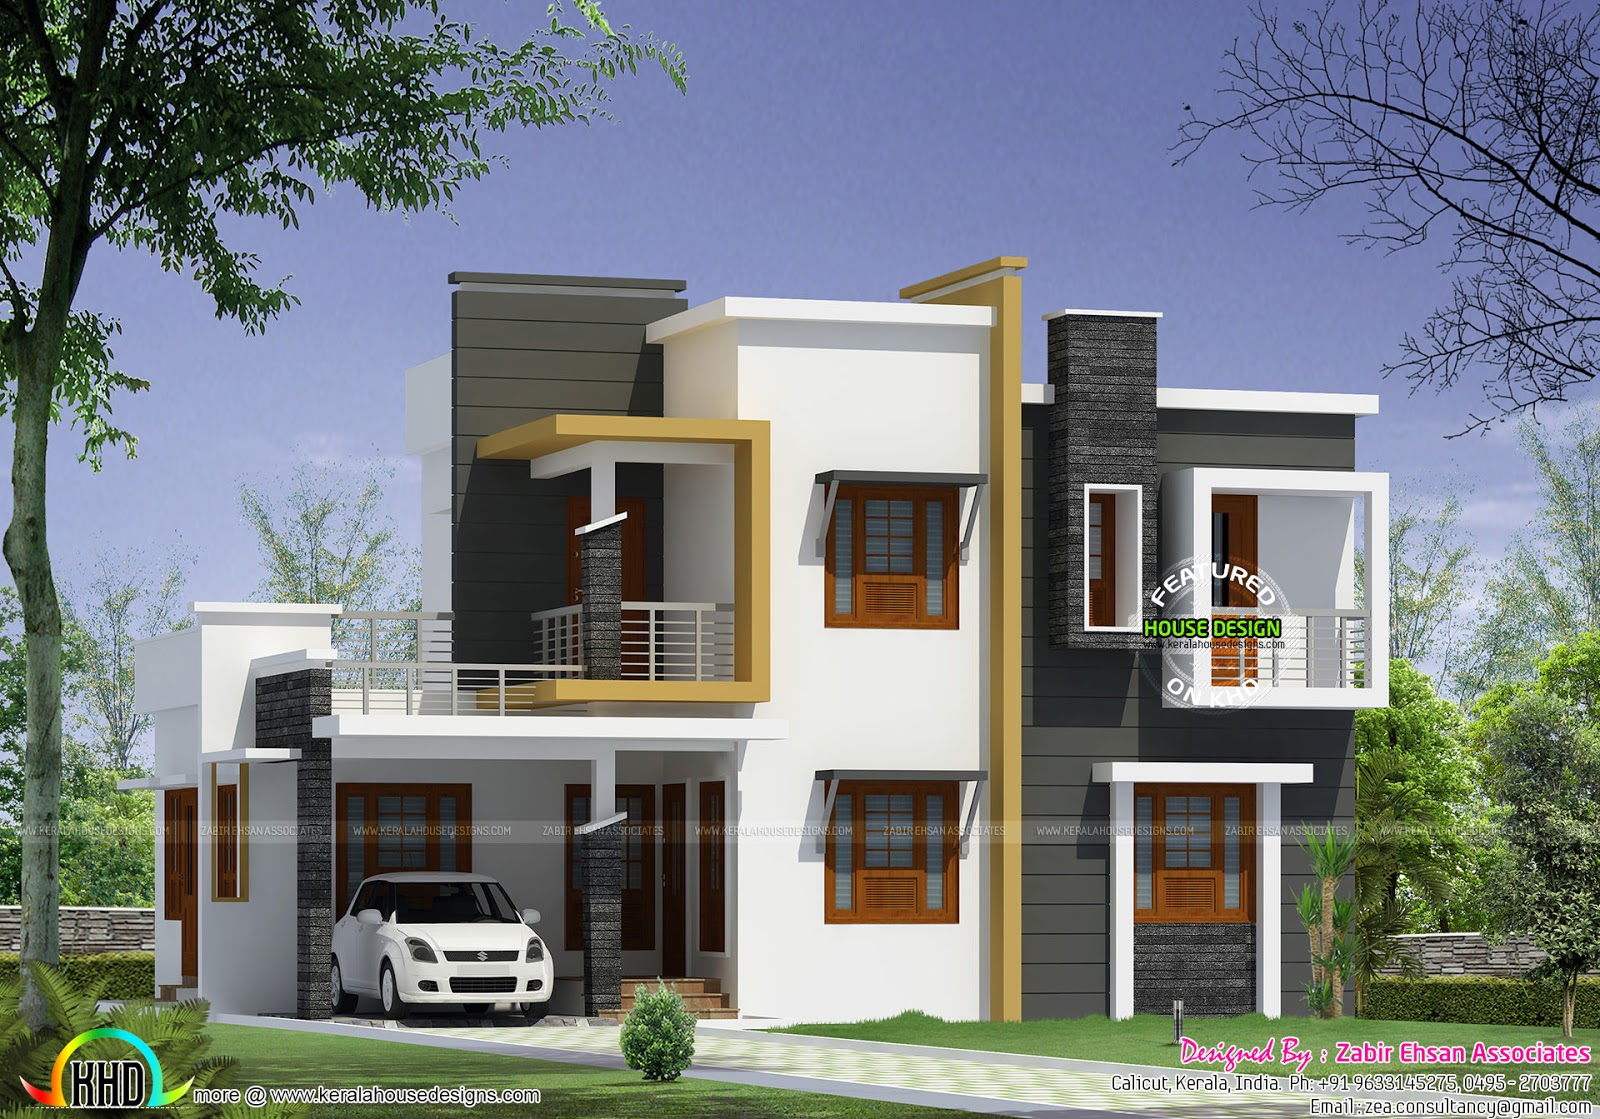 Box type modern house plan kerala home design and floor for Contemporary homes images